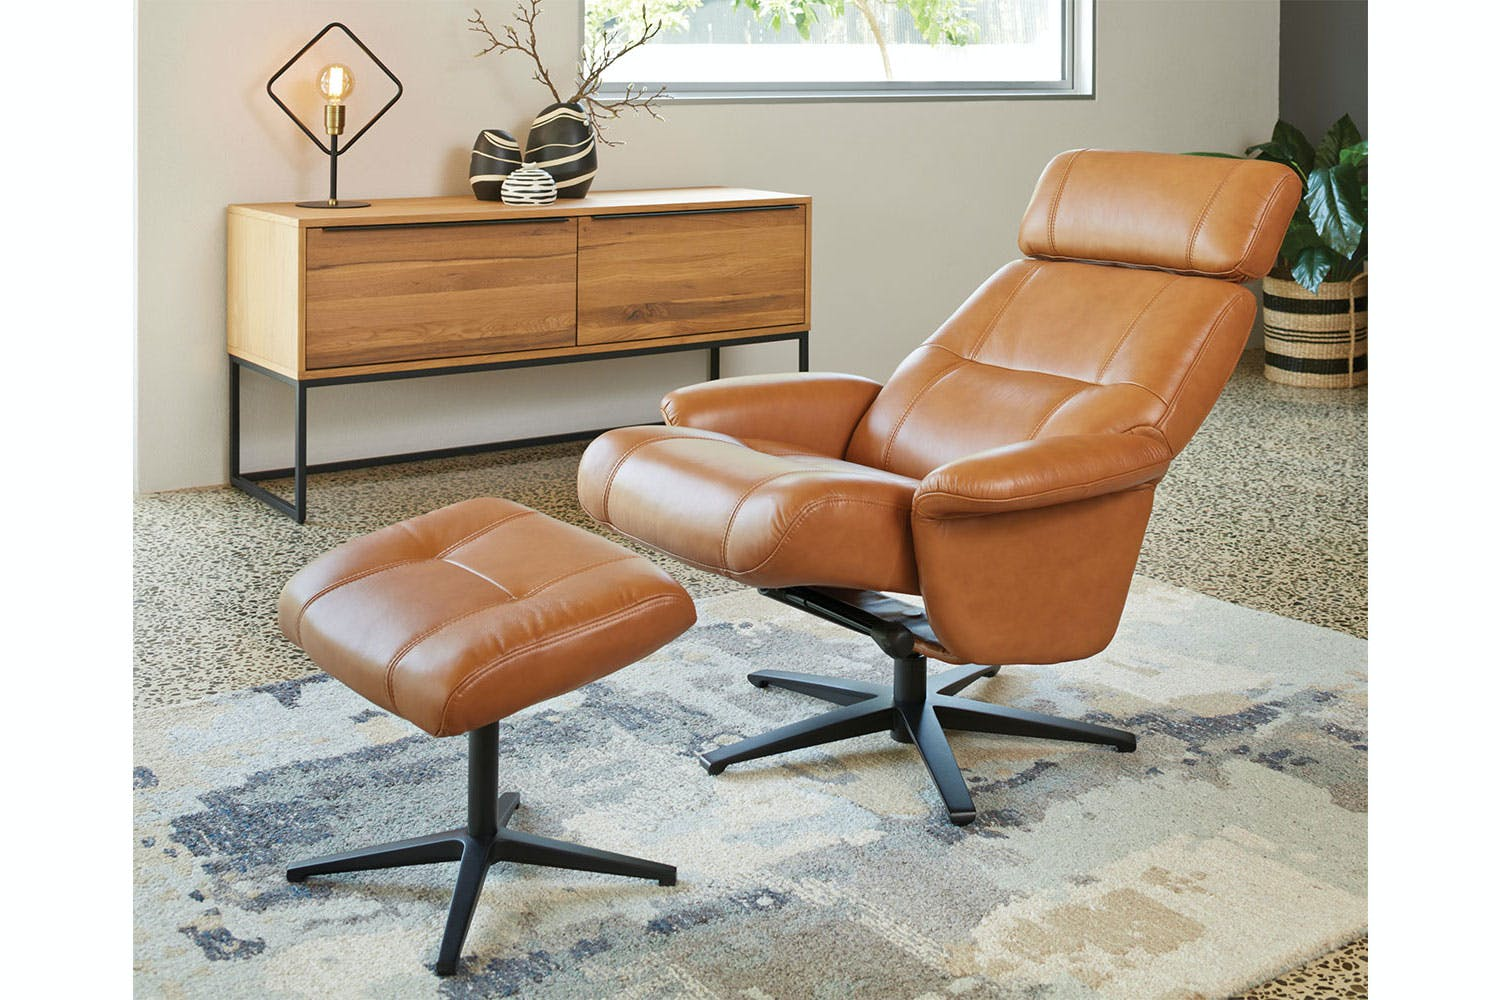 Henri Leather Recliner Chair and Footstool by Debonaire Furniture